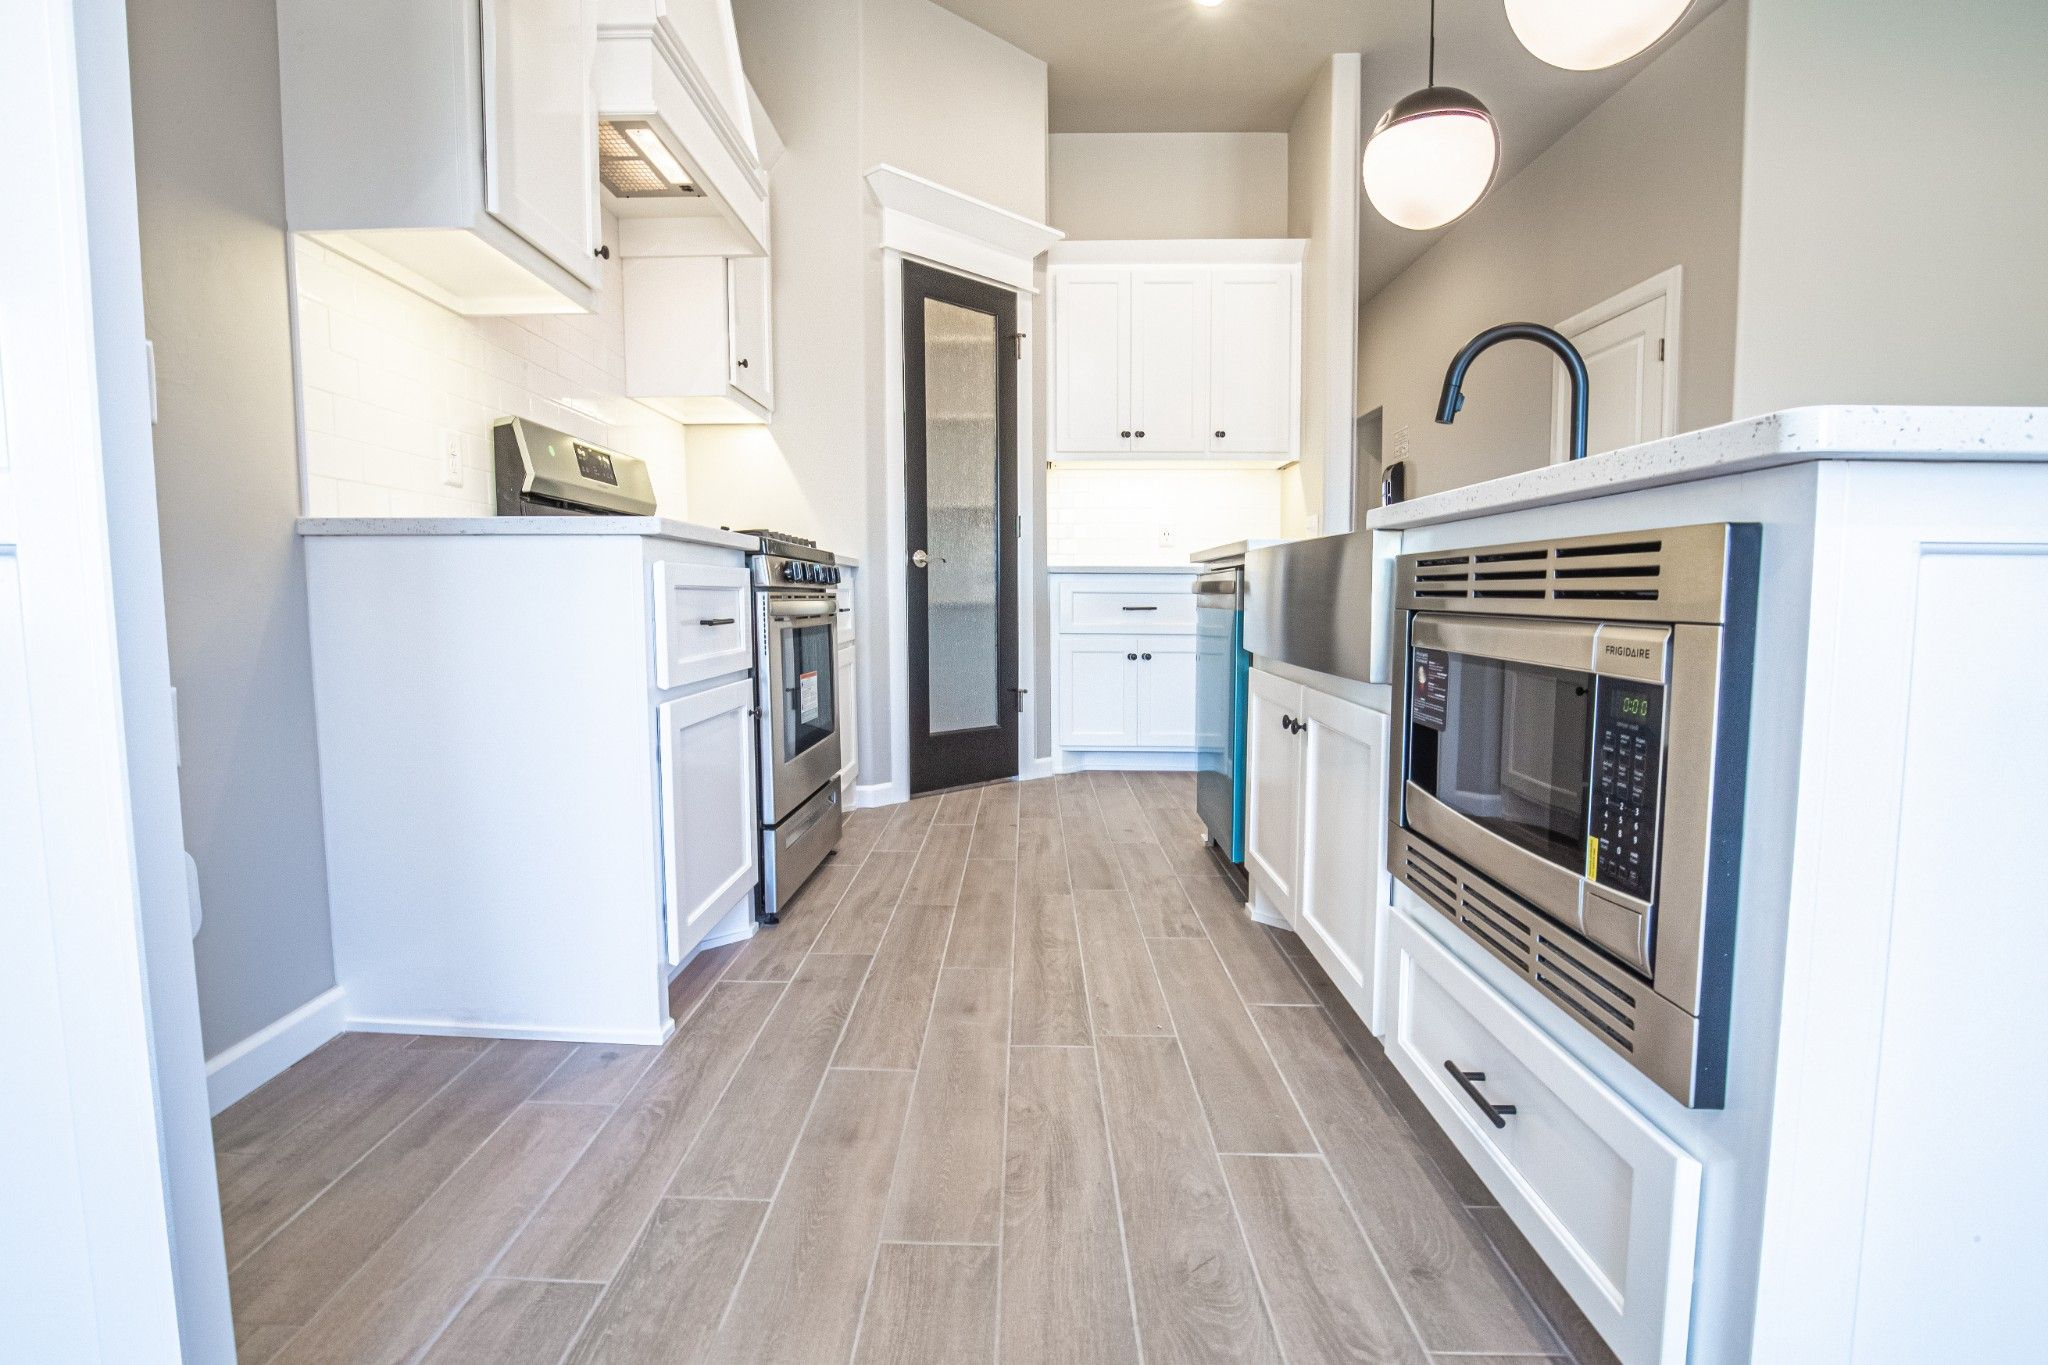 Kitchen featured in the Brinklee By Homes By Taber in Oklahoma City, OK